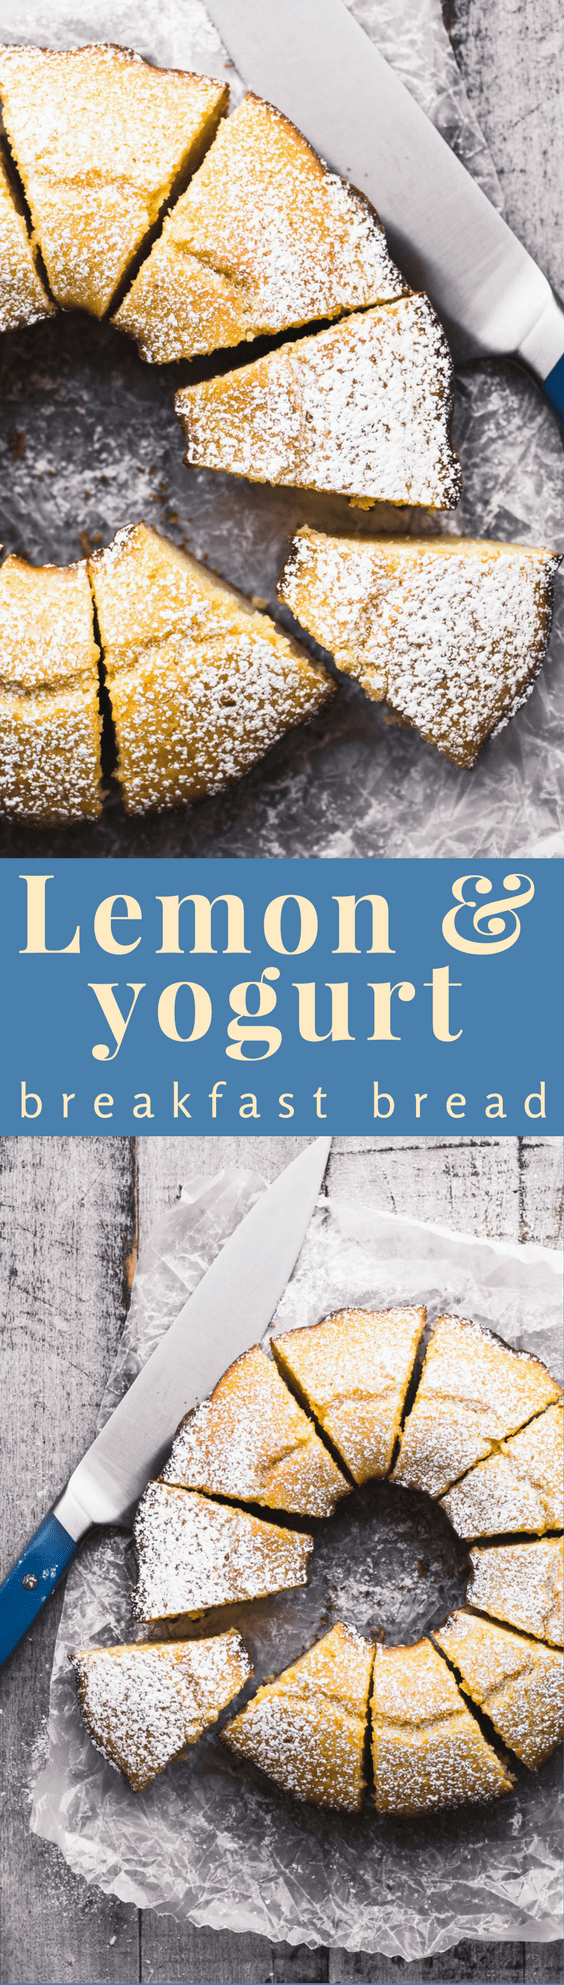 Lemon Yogurt Breakfast Cake, or Ciambella ~ this is a classic Italian style lemon bundt cake with lots of lemony flavor and a delicate crumb. Pair it with a good cup of coffee and you've got the start to a great day. #cake #lemoncake #italiancake #breakfast #coffeecake #bundtcake #dessert #teacake #afternoontea #snackcake #ciambella #ringcake #citrus #Meyerlemon #lemondessert